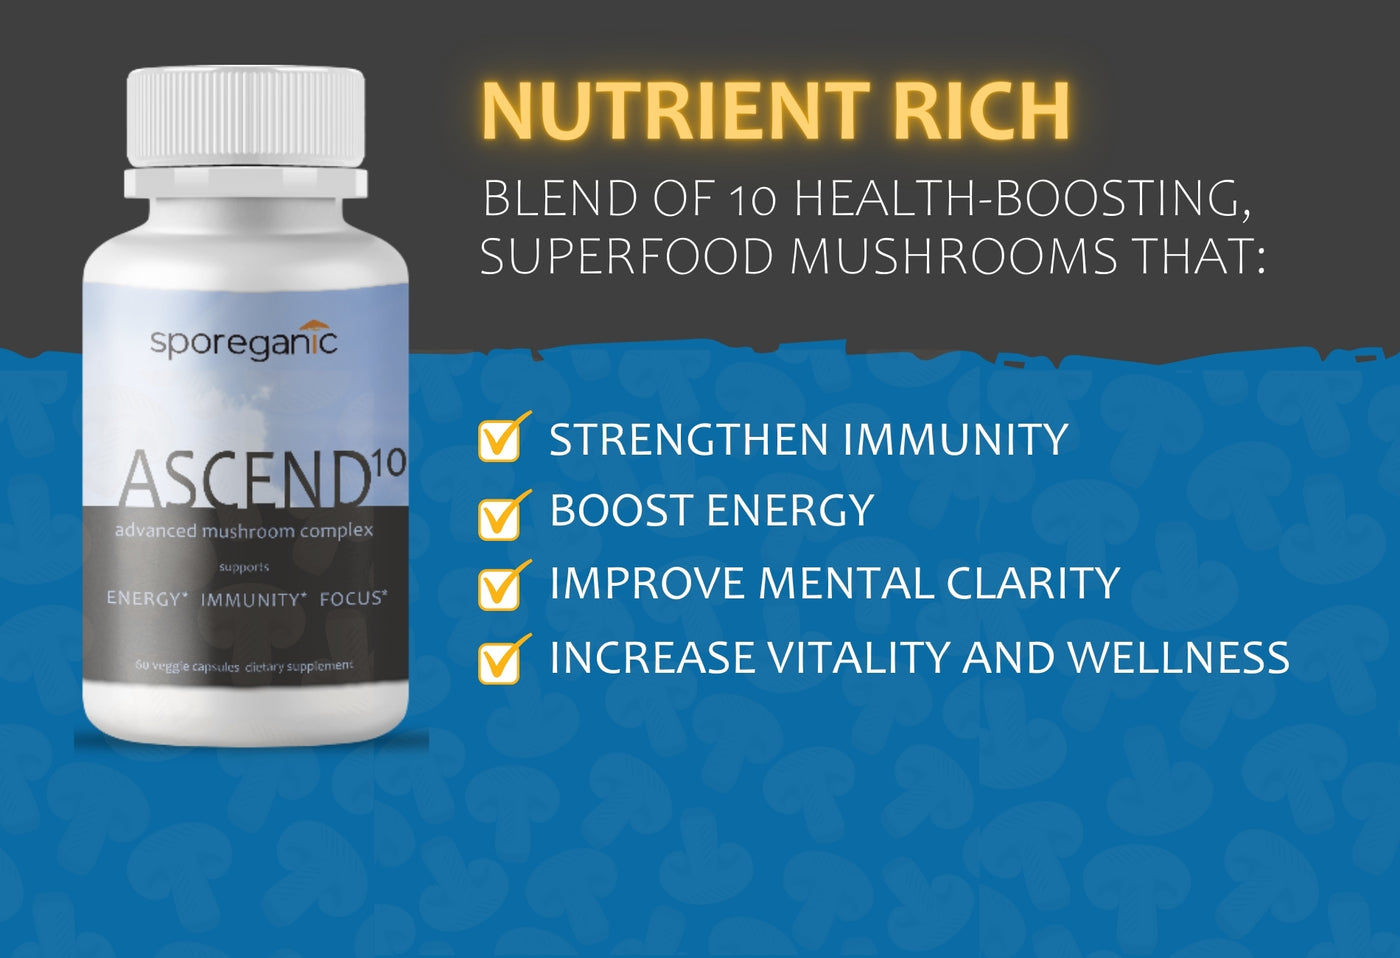 Sporeganic mushroom supplement, strengthen immunity, boost energy, improve mental clarity, improve mental focus, improve brain health, increase vitality, reduce ageing, increase wellness, improve athletic performance, improve sexual health, Vitamin D